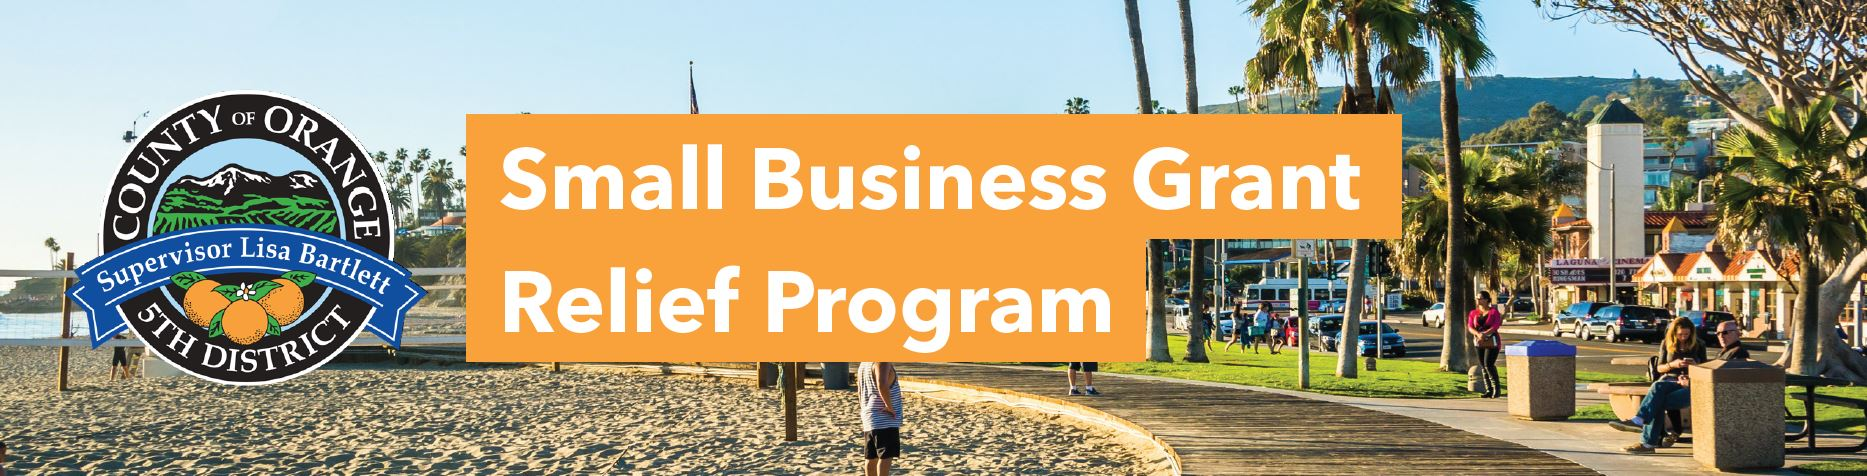 D5 Small Business Grant Program